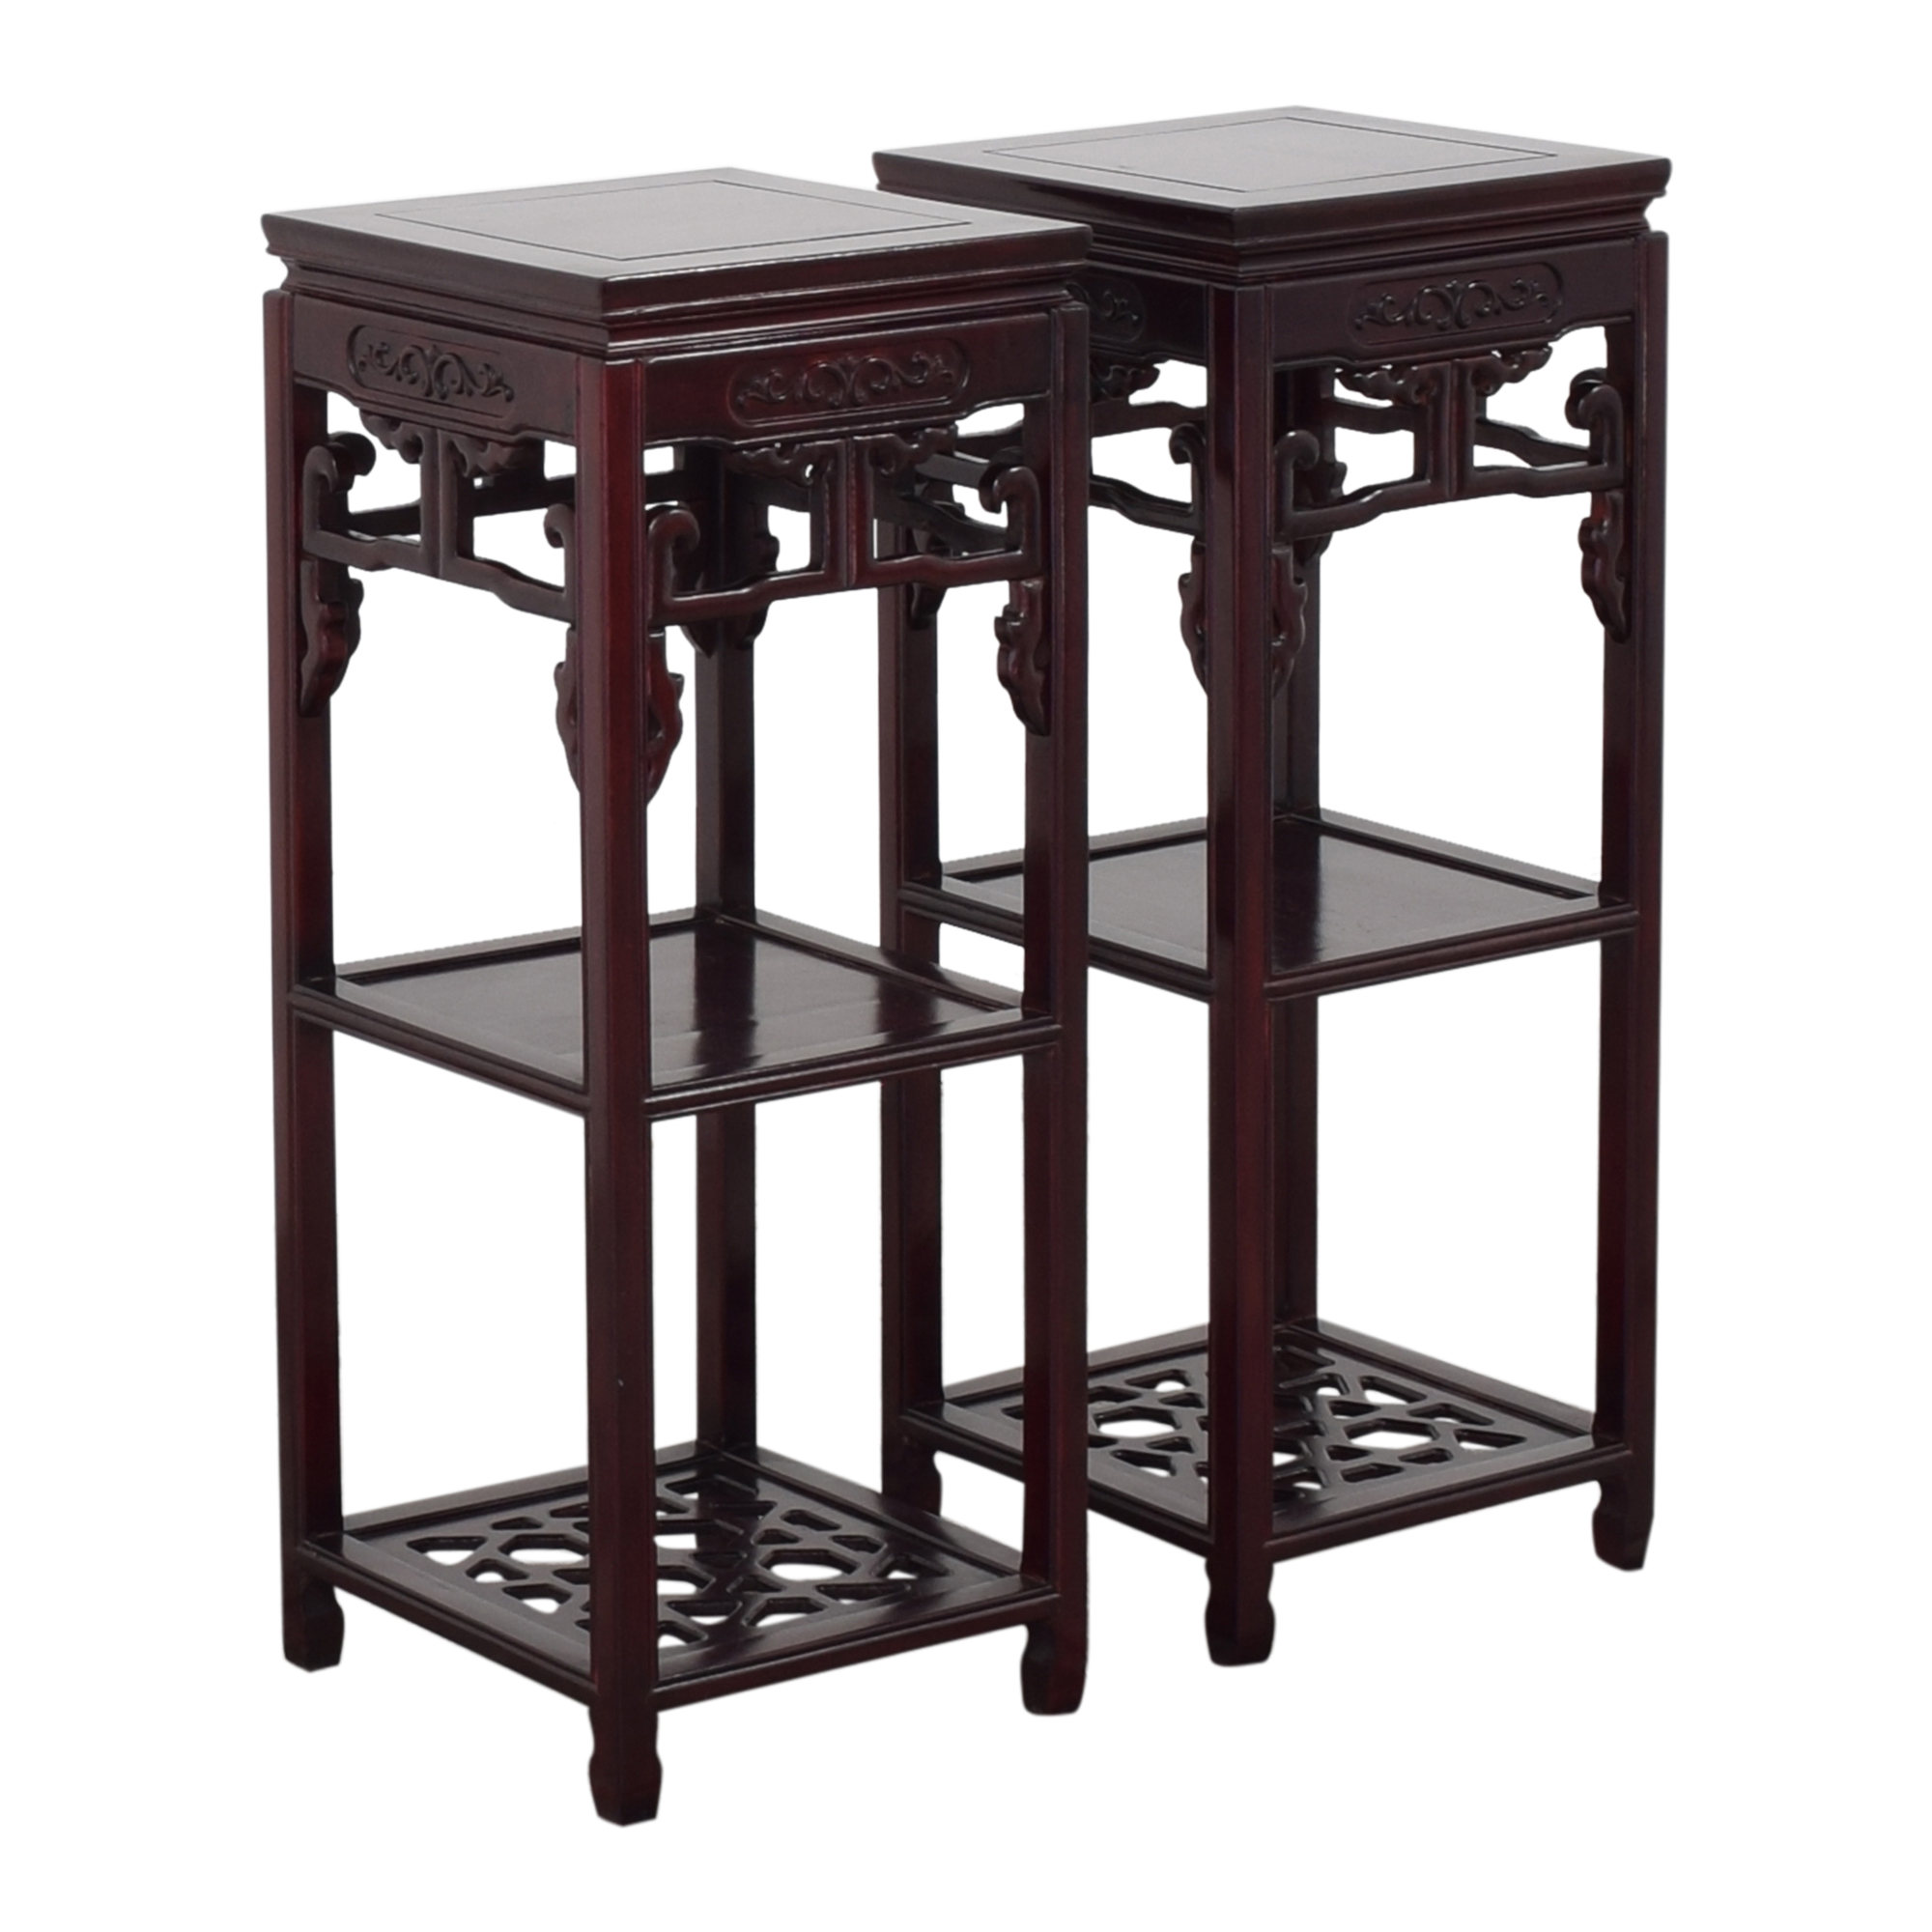 Carved Three Tier Plant Stands